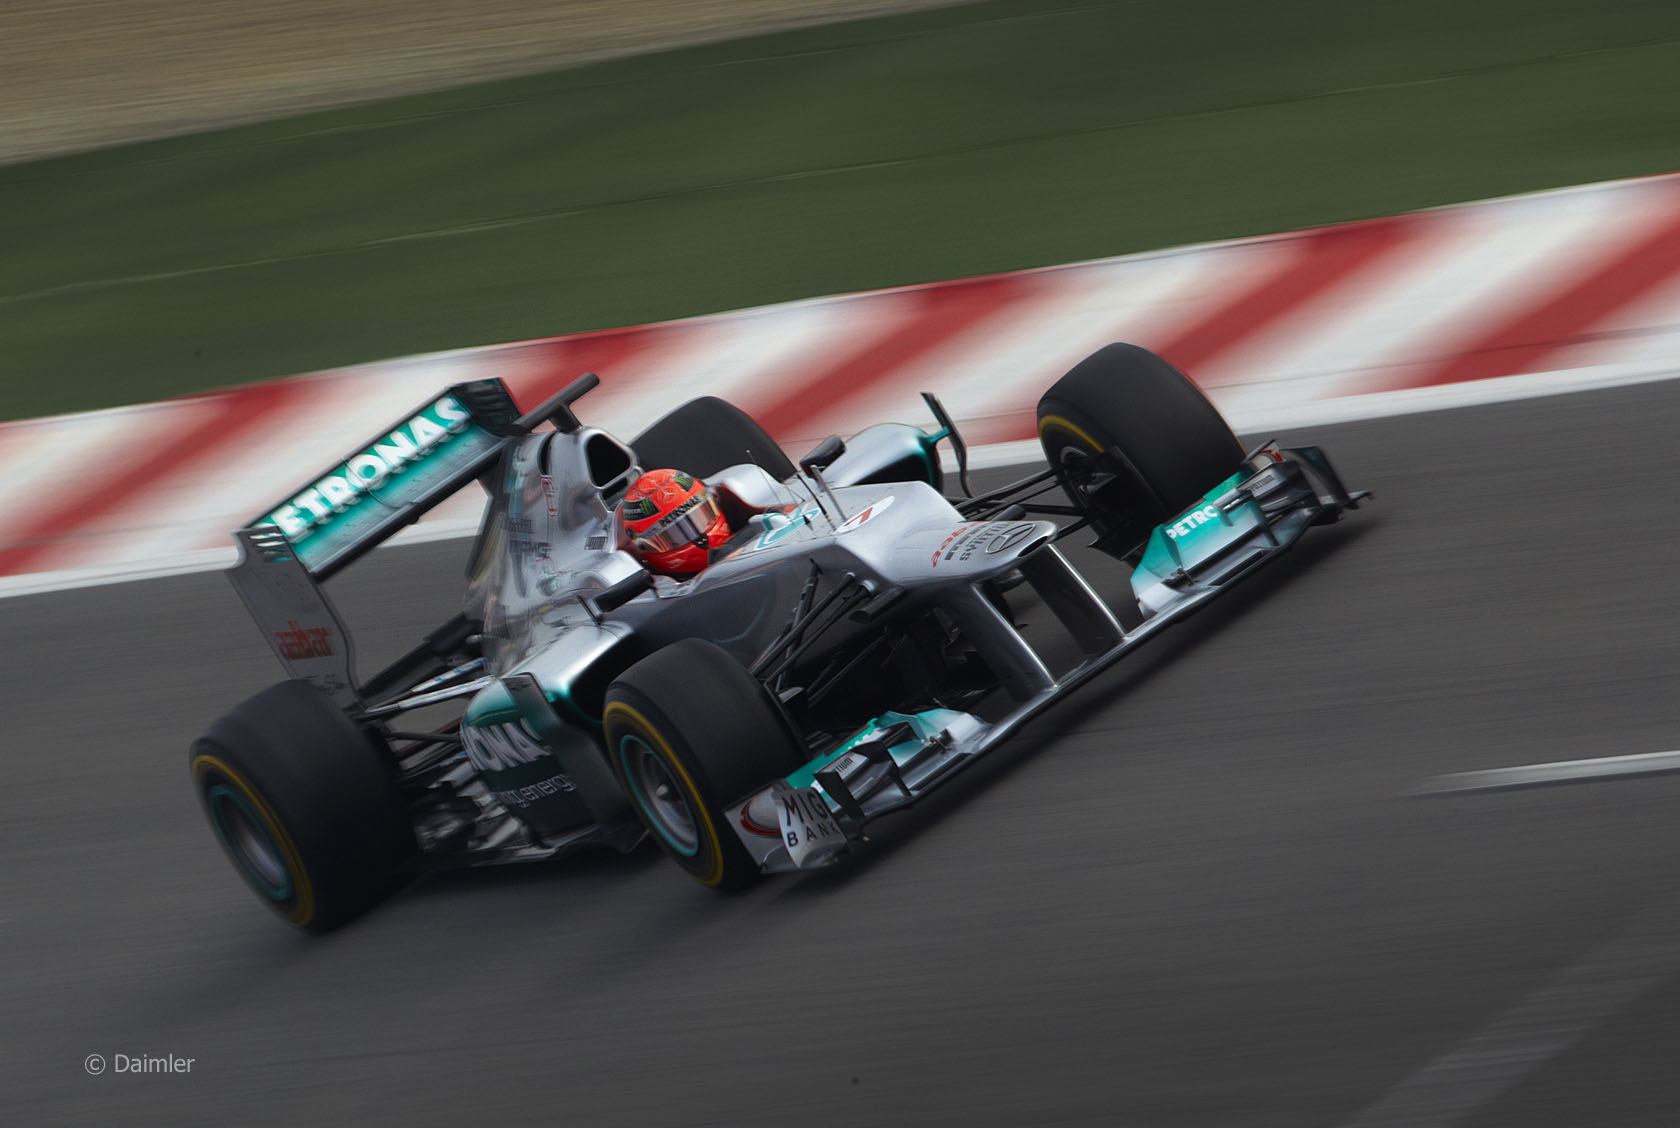 F1 2012 Season Preview: Drivers and Teams | The Lowdown